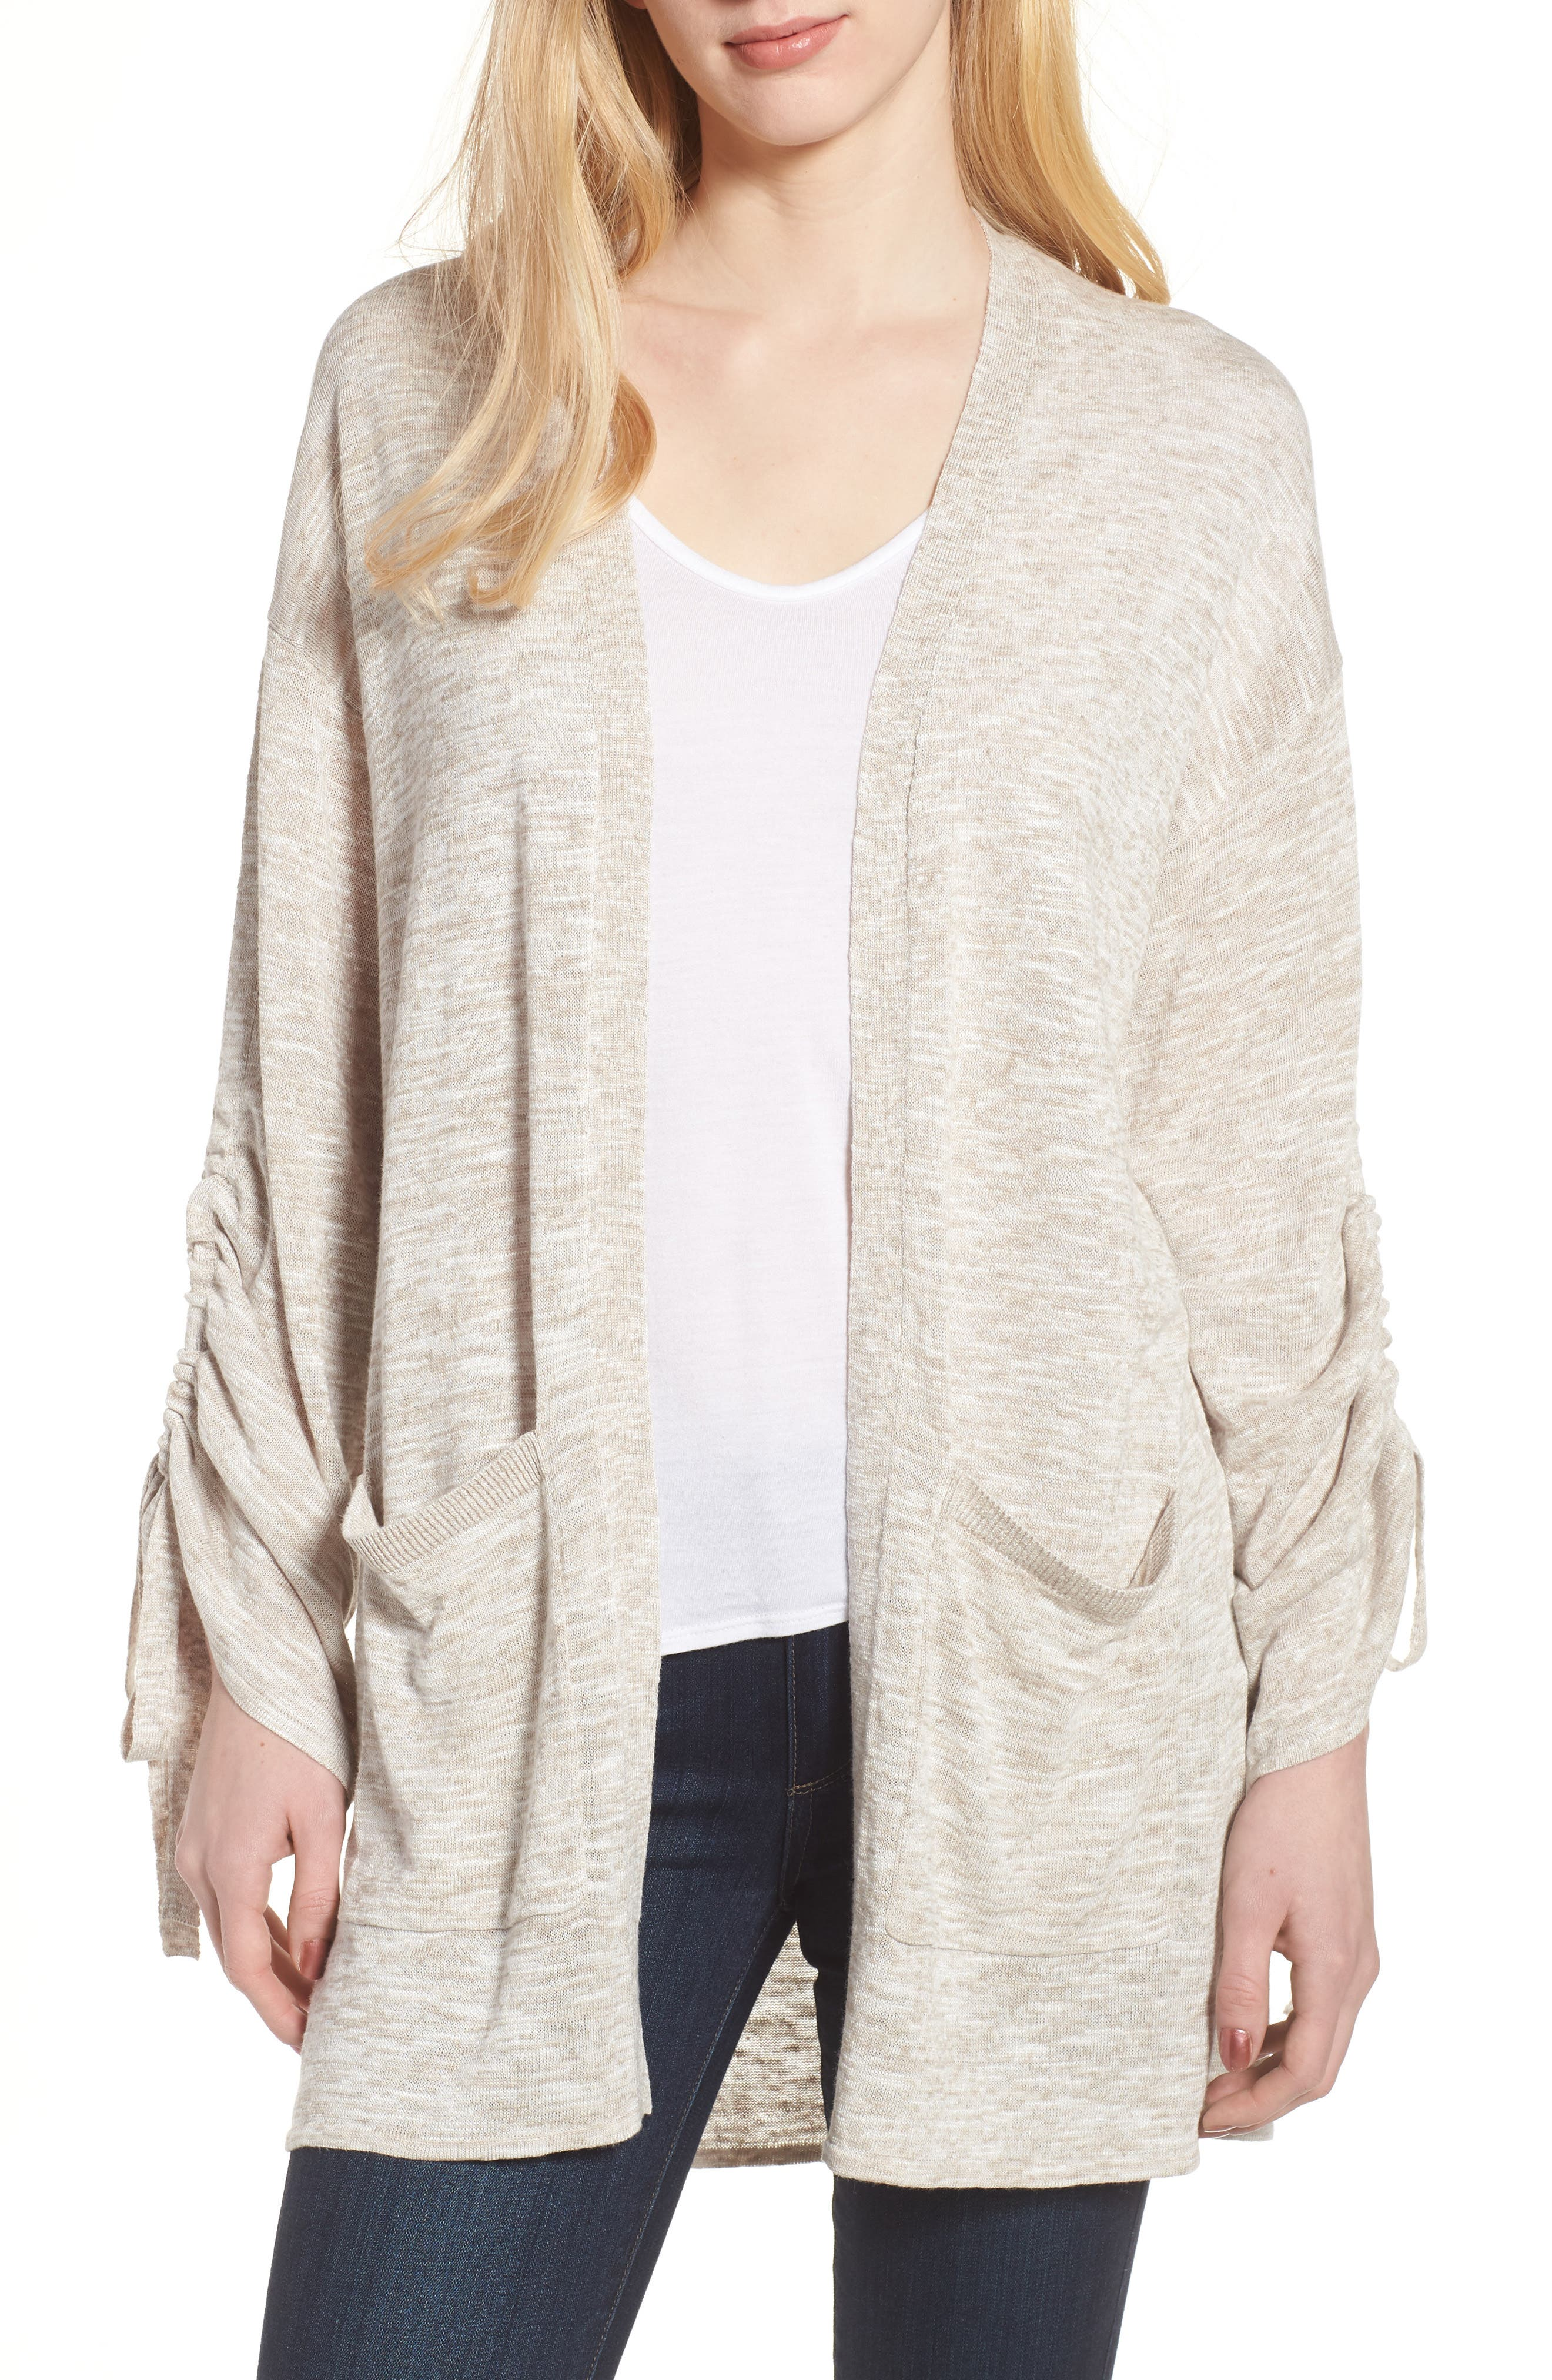 Ruched Sleeve Cardigan,                         Main,                         color, Beige Linen- White Slubs